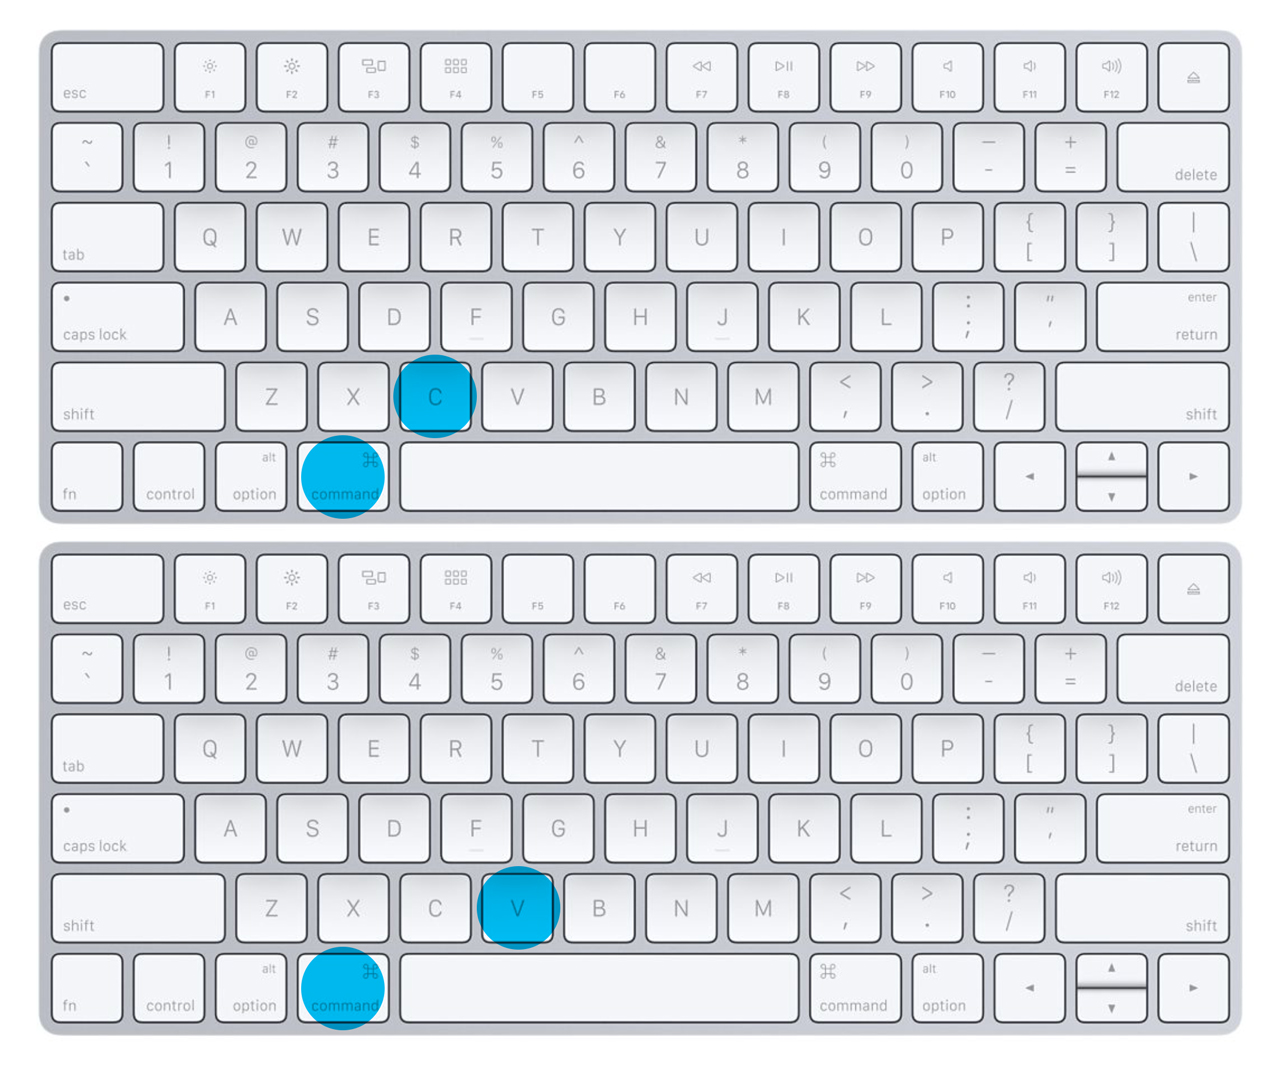 Command + C and Command + V Apple Mac Keyboard Shortcuts